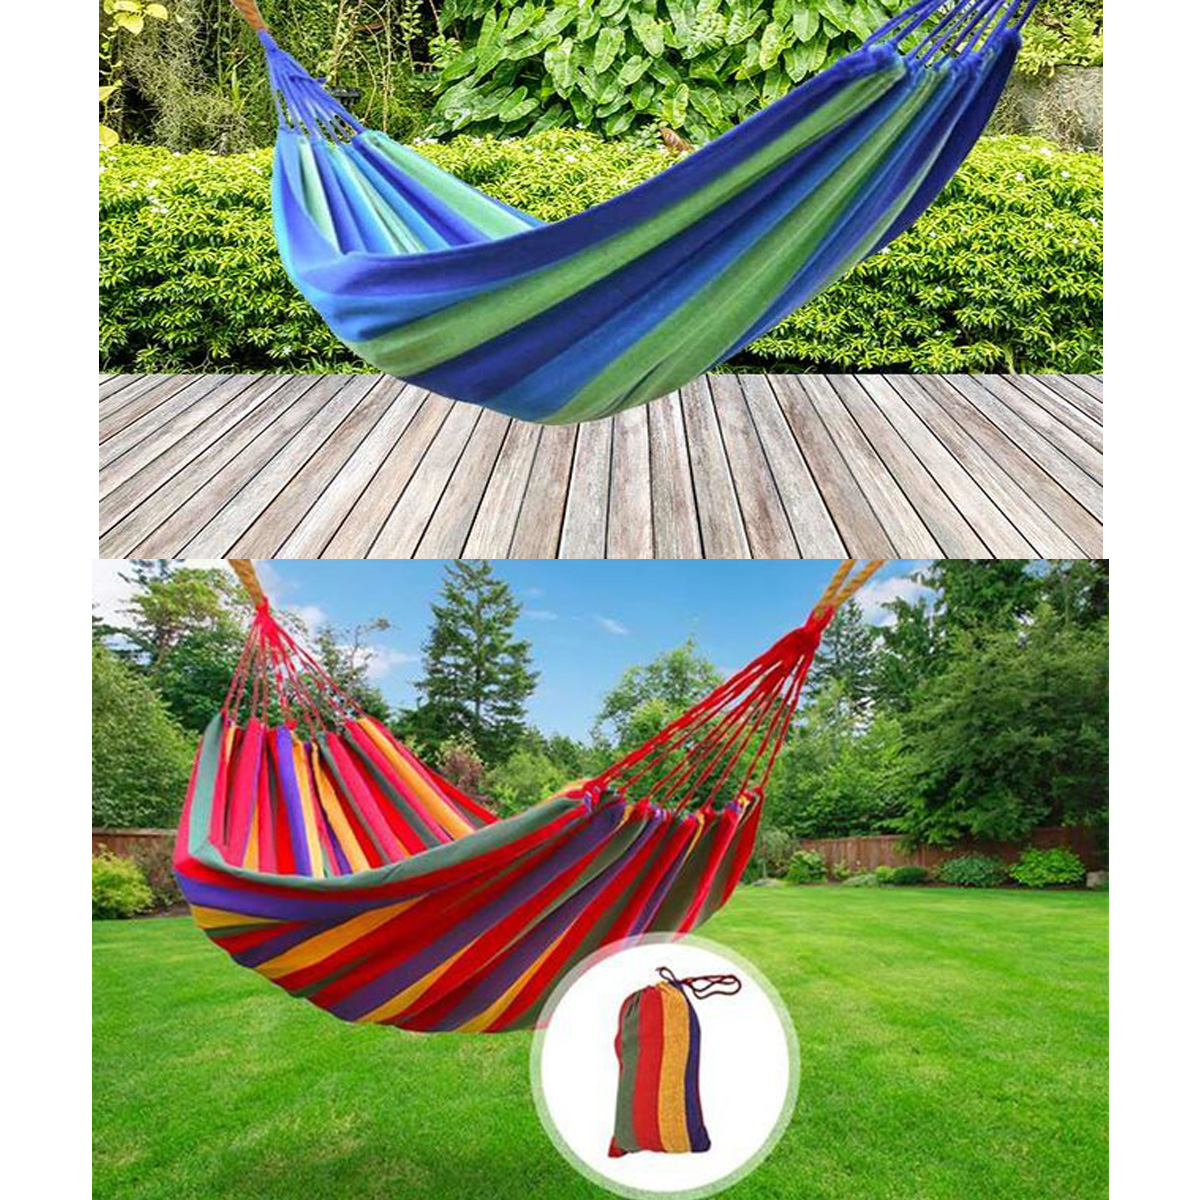 Loyal Portable Hammock Outdoor Garden Hammock Hanging Bed For Home Travel Camping Hiking Swing Canvas Stripe Hammock Camping & Hiking Sports & Entertainment